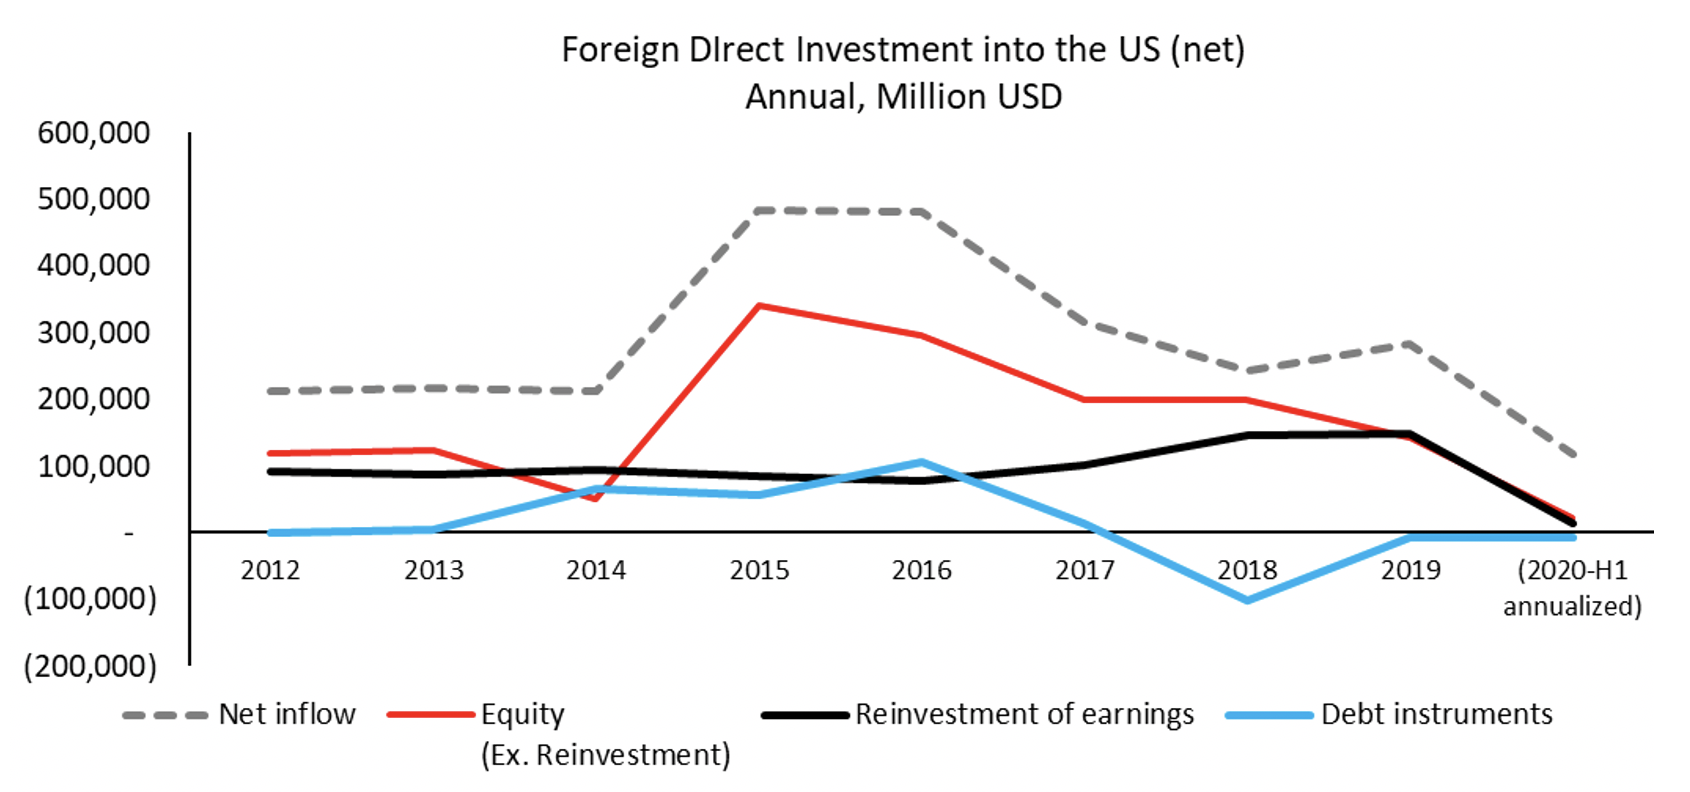 The recent fall in FDI flows to the US 1